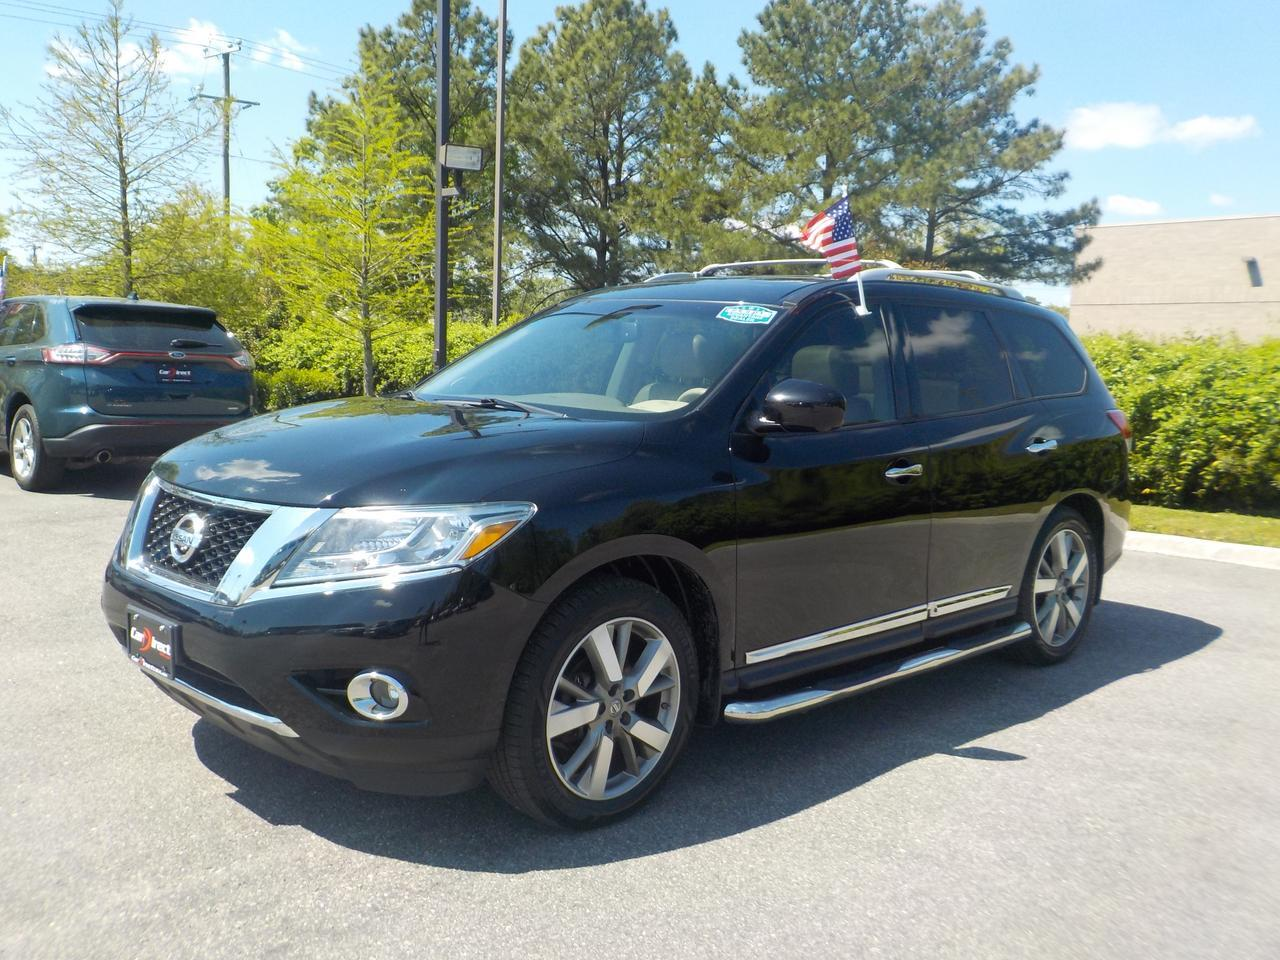 2013 NISSAN PATHFINDER PLATINUM 4X4, LEATHER, 3RD ROW SEAT, DVD, NAVIGATION, BLUETOOTH, ONLY 94K MILES!